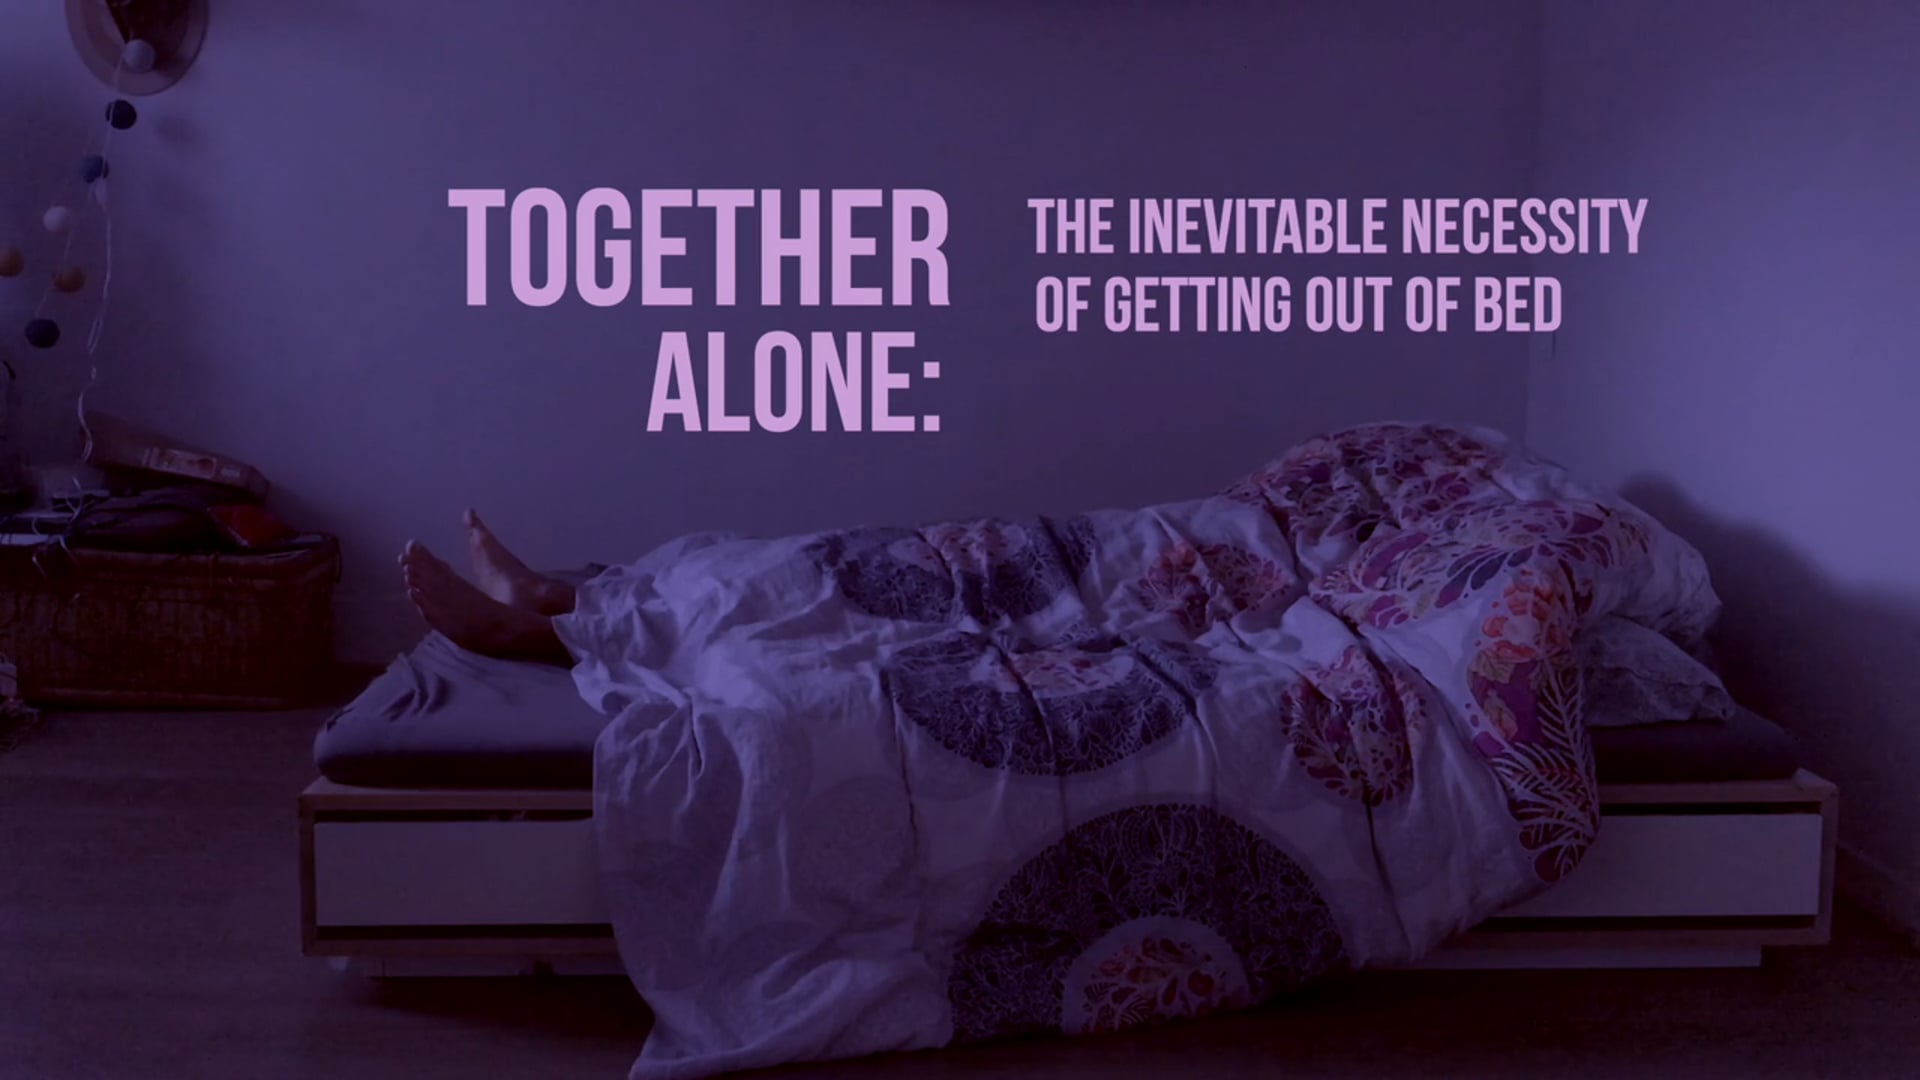 Together Alone - The Inevitable Necessity of Getting Out of Bed